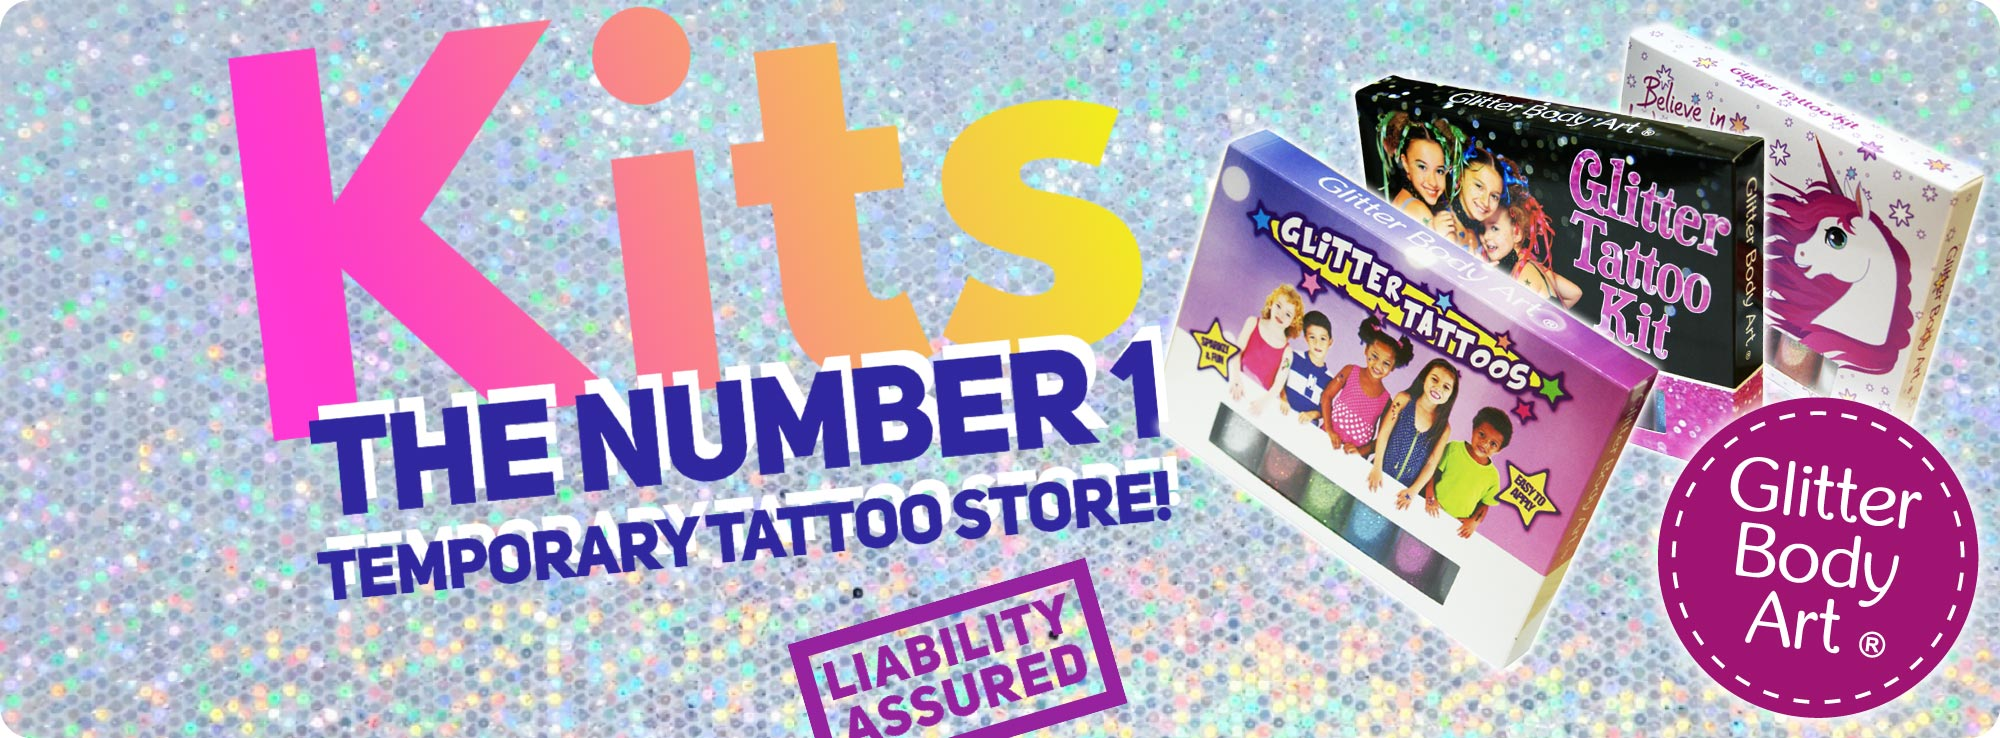 temporary tattoo kits for kids with stencils, glitter and body glue